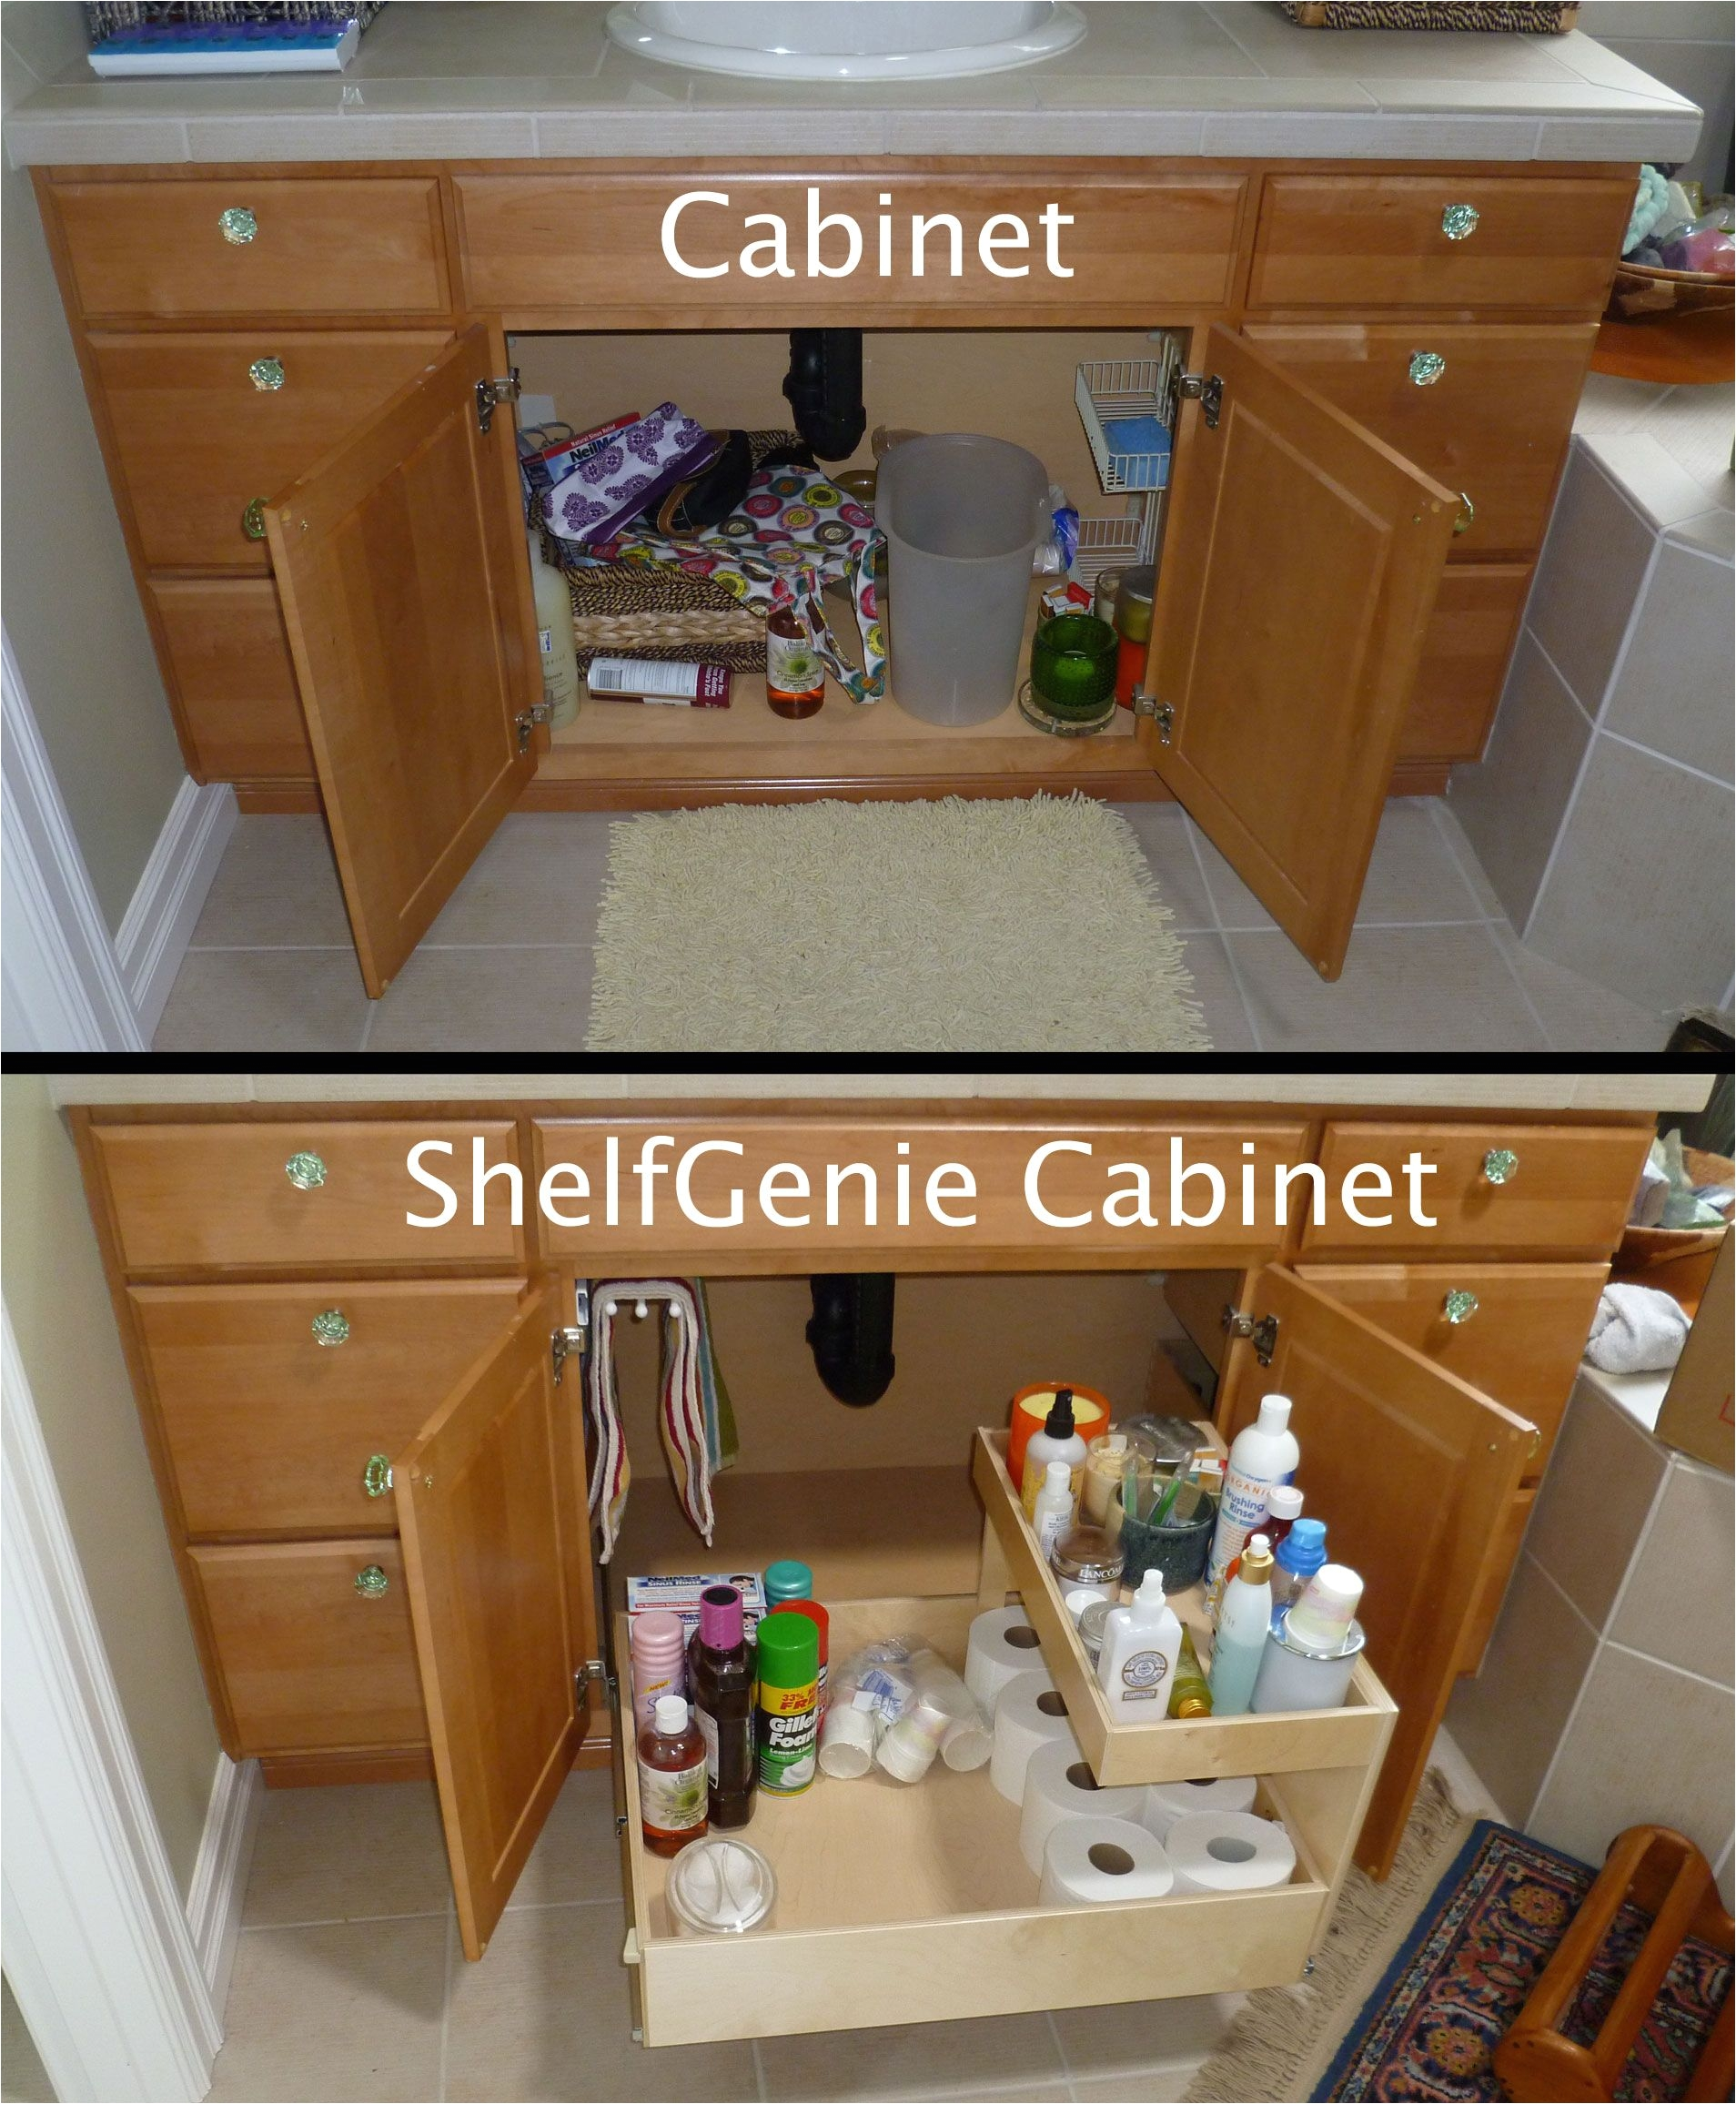 the recipe for turning this cabinet into a shelfgenie cabinet add one pull out towel bar one pull out shelf one riser shelf and enjoy